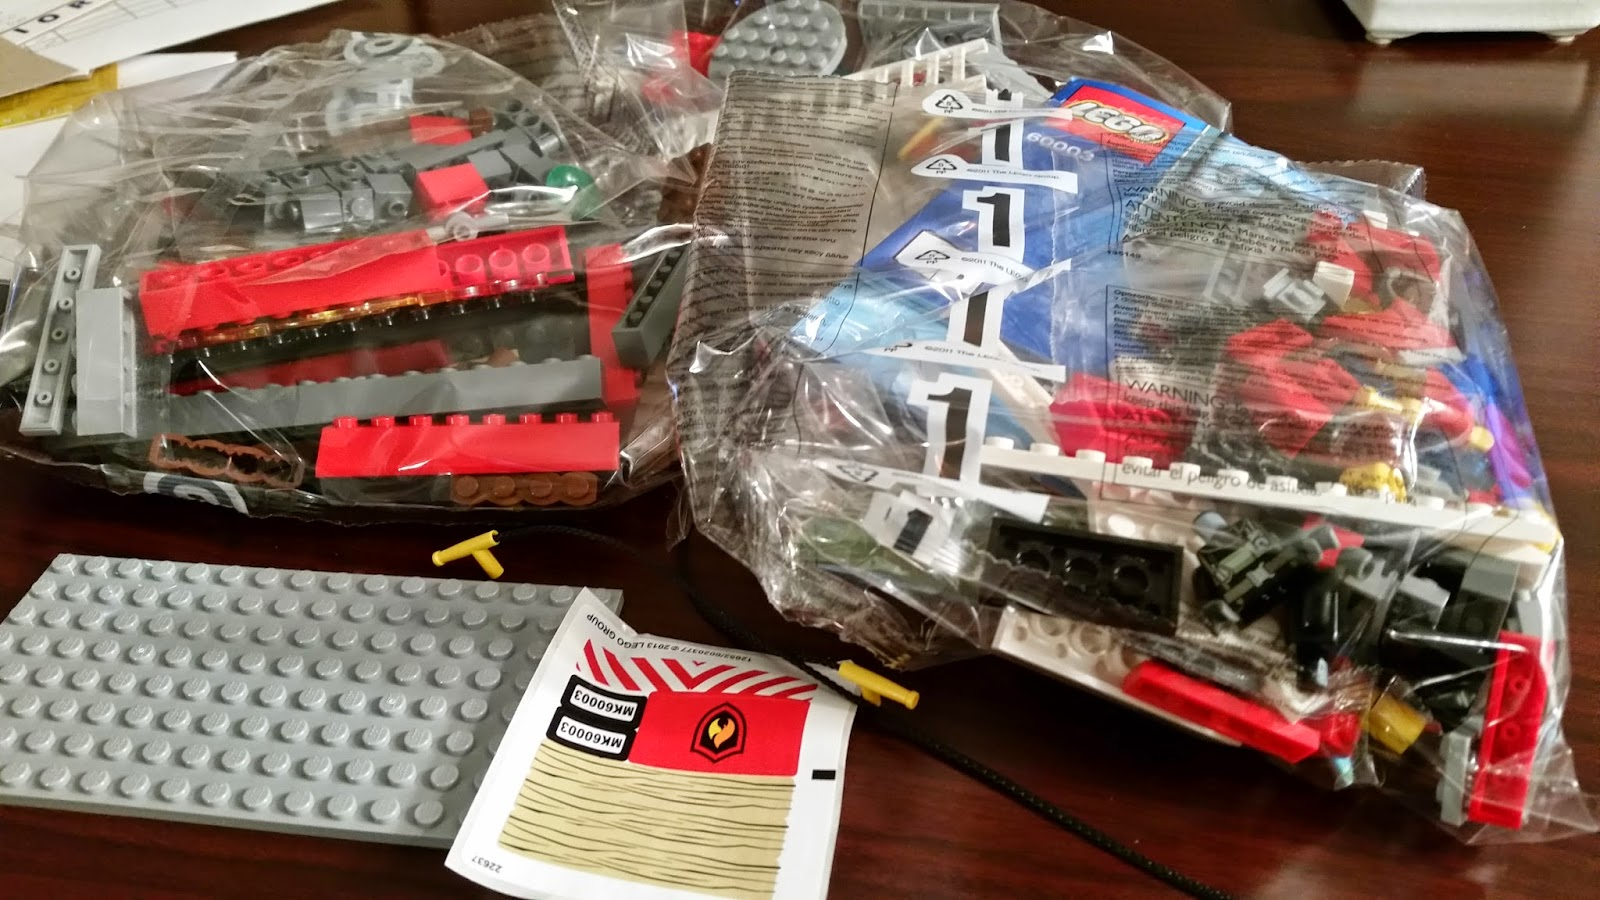 60003Fire Review Emergency With Playing BricksLego sQrChdxt